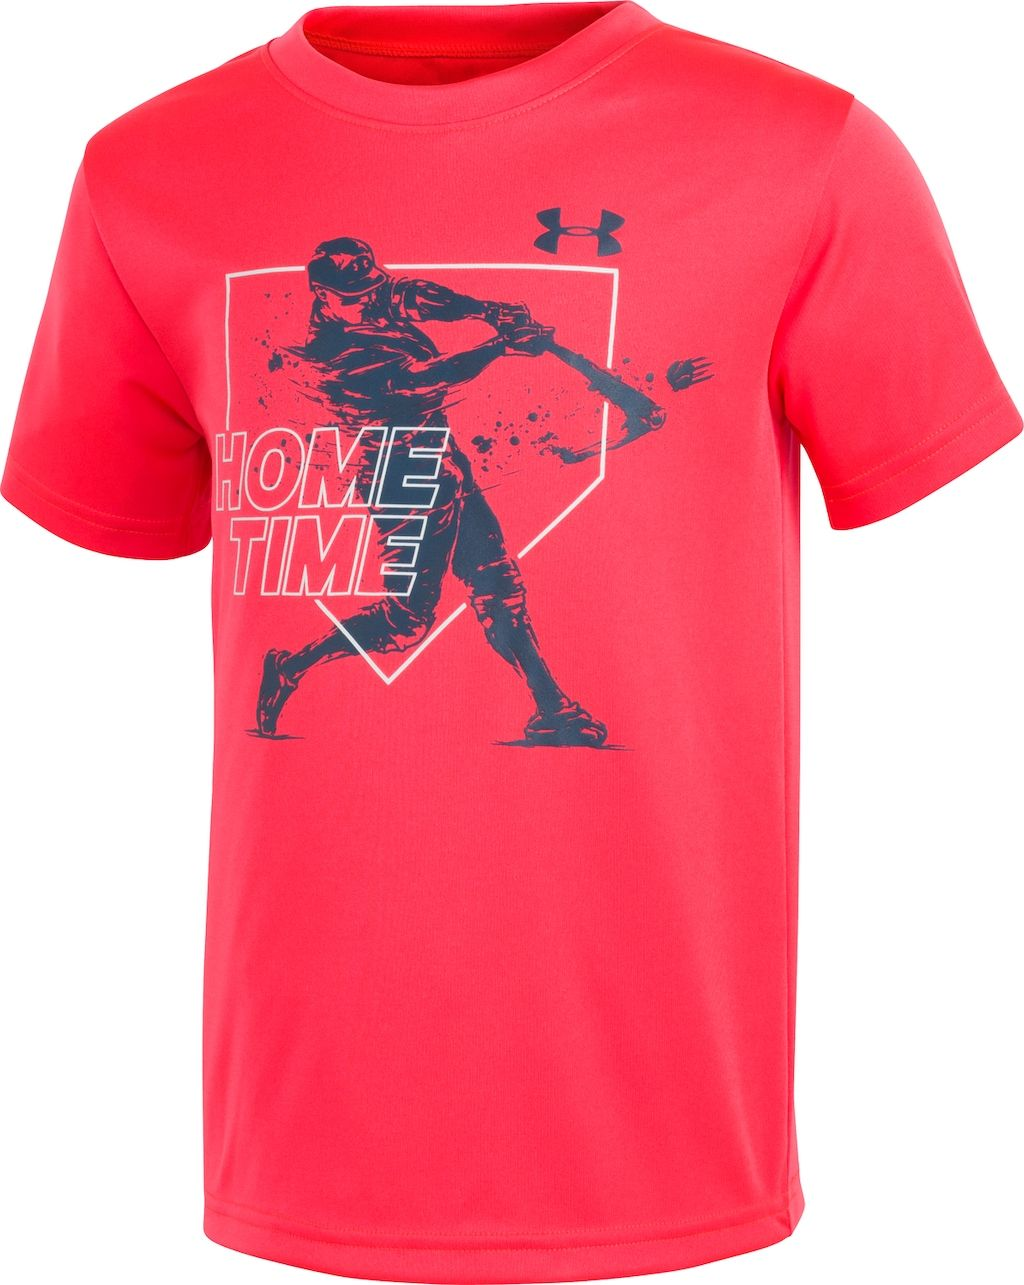 7baa510f Boys 4-7 Under Armour Baseball Batter Graphic Tee, Size: 4, Brt Red ...